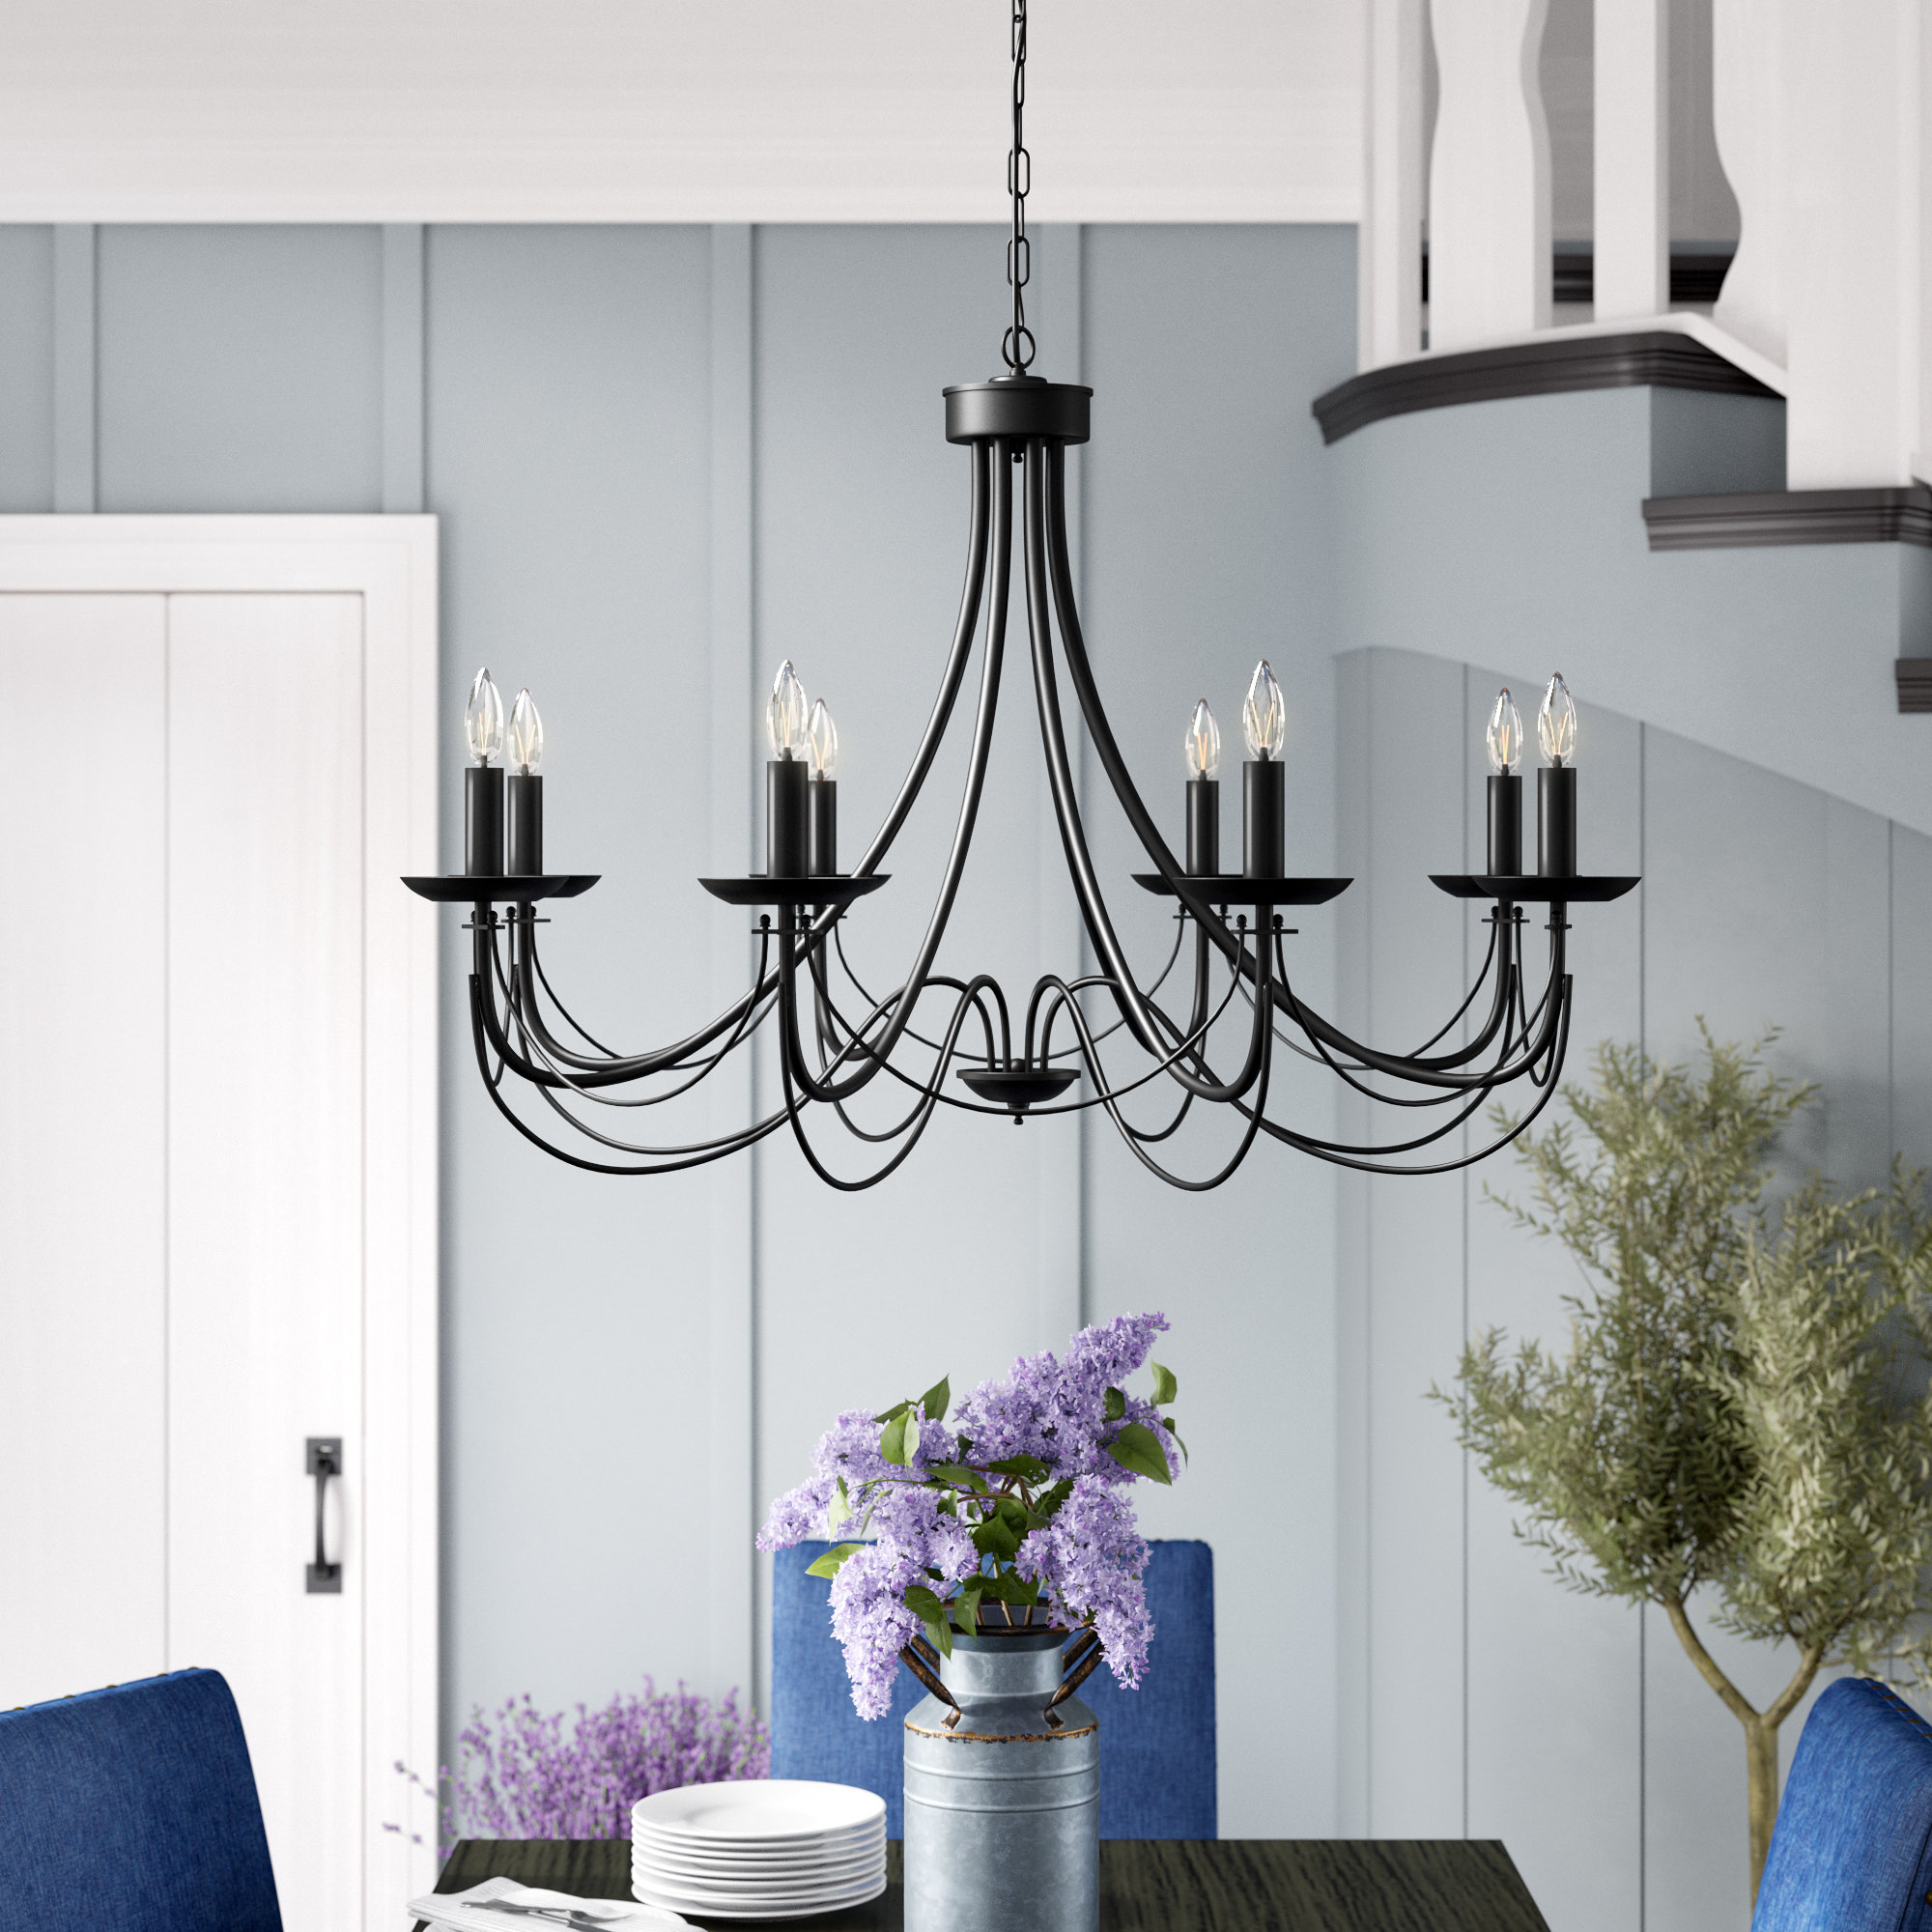 Ryckman Iron 8 Light Candle Style Chandelier Within Well Liked Watford 6 Light Candle Style Chandeliers (View 11 of 20)